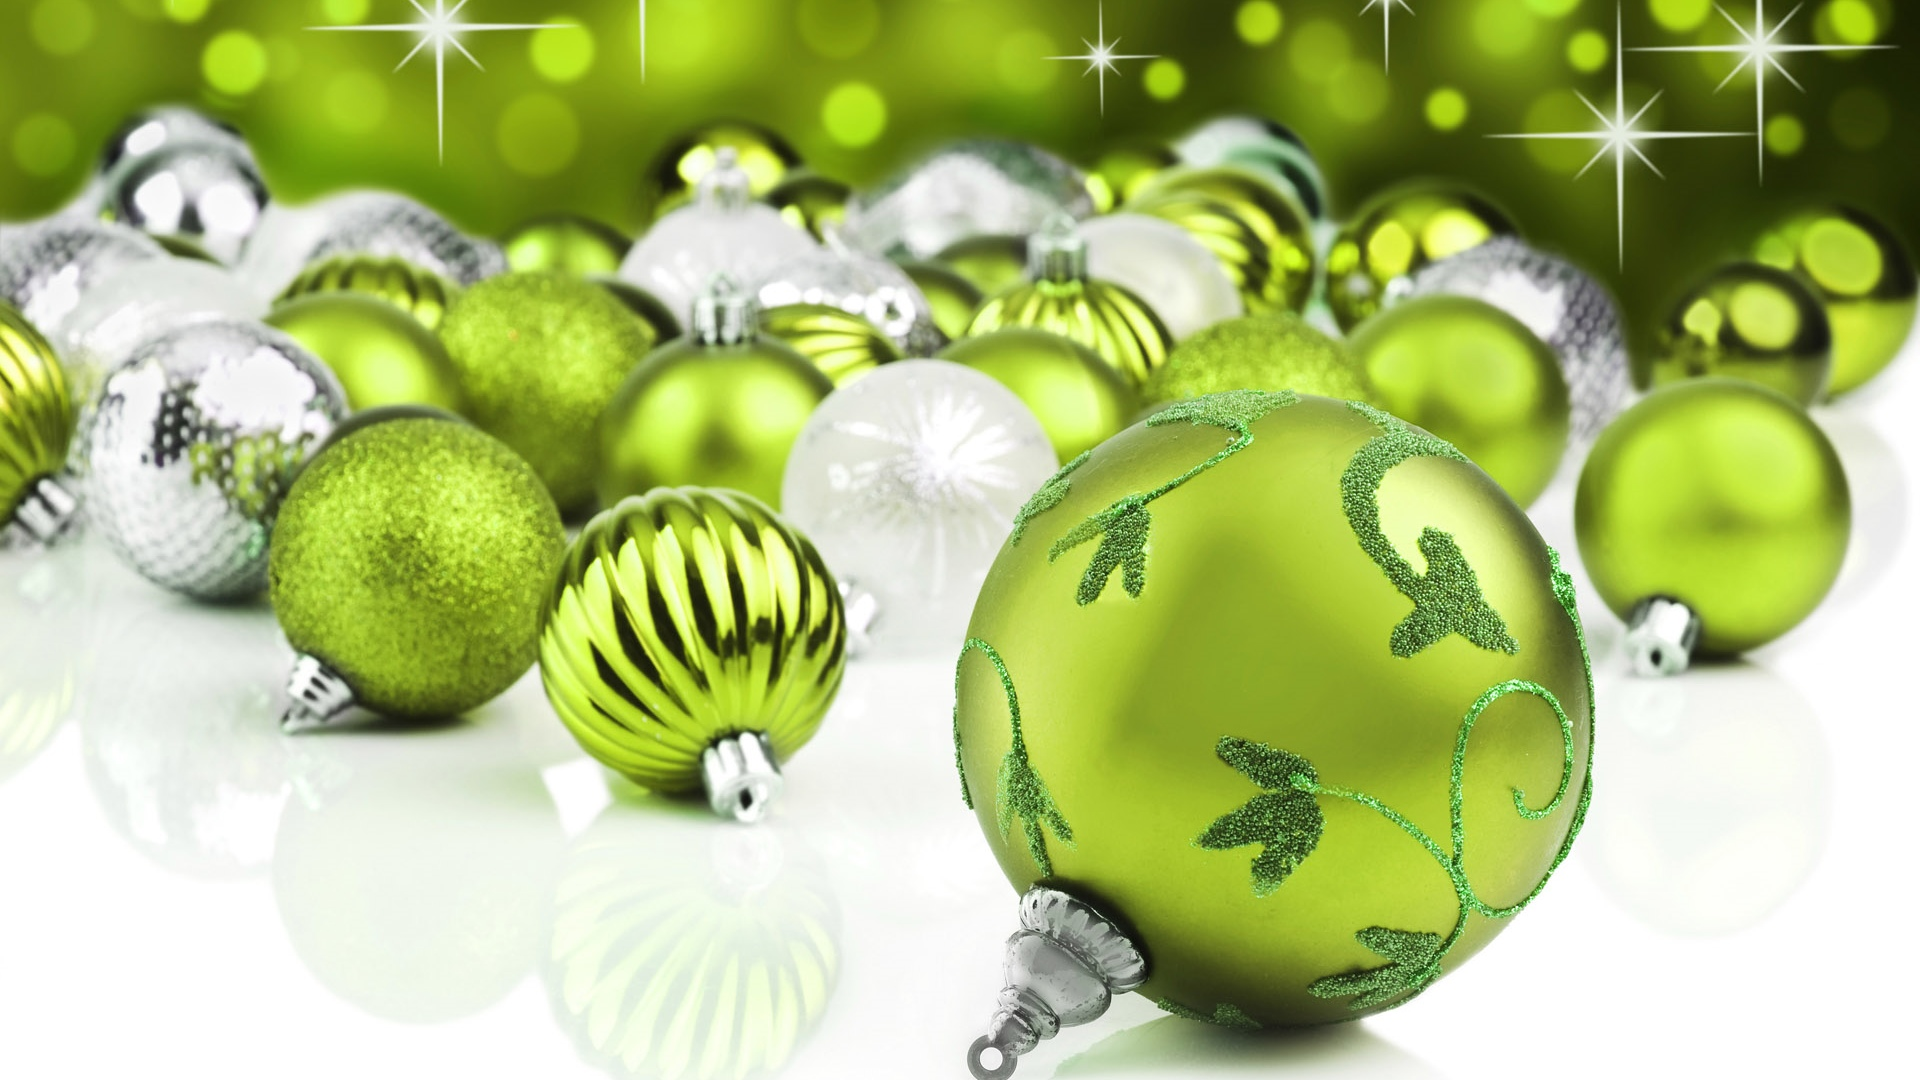 Beautiful Christmas Picture Free Download by Afolabi Biaggetti